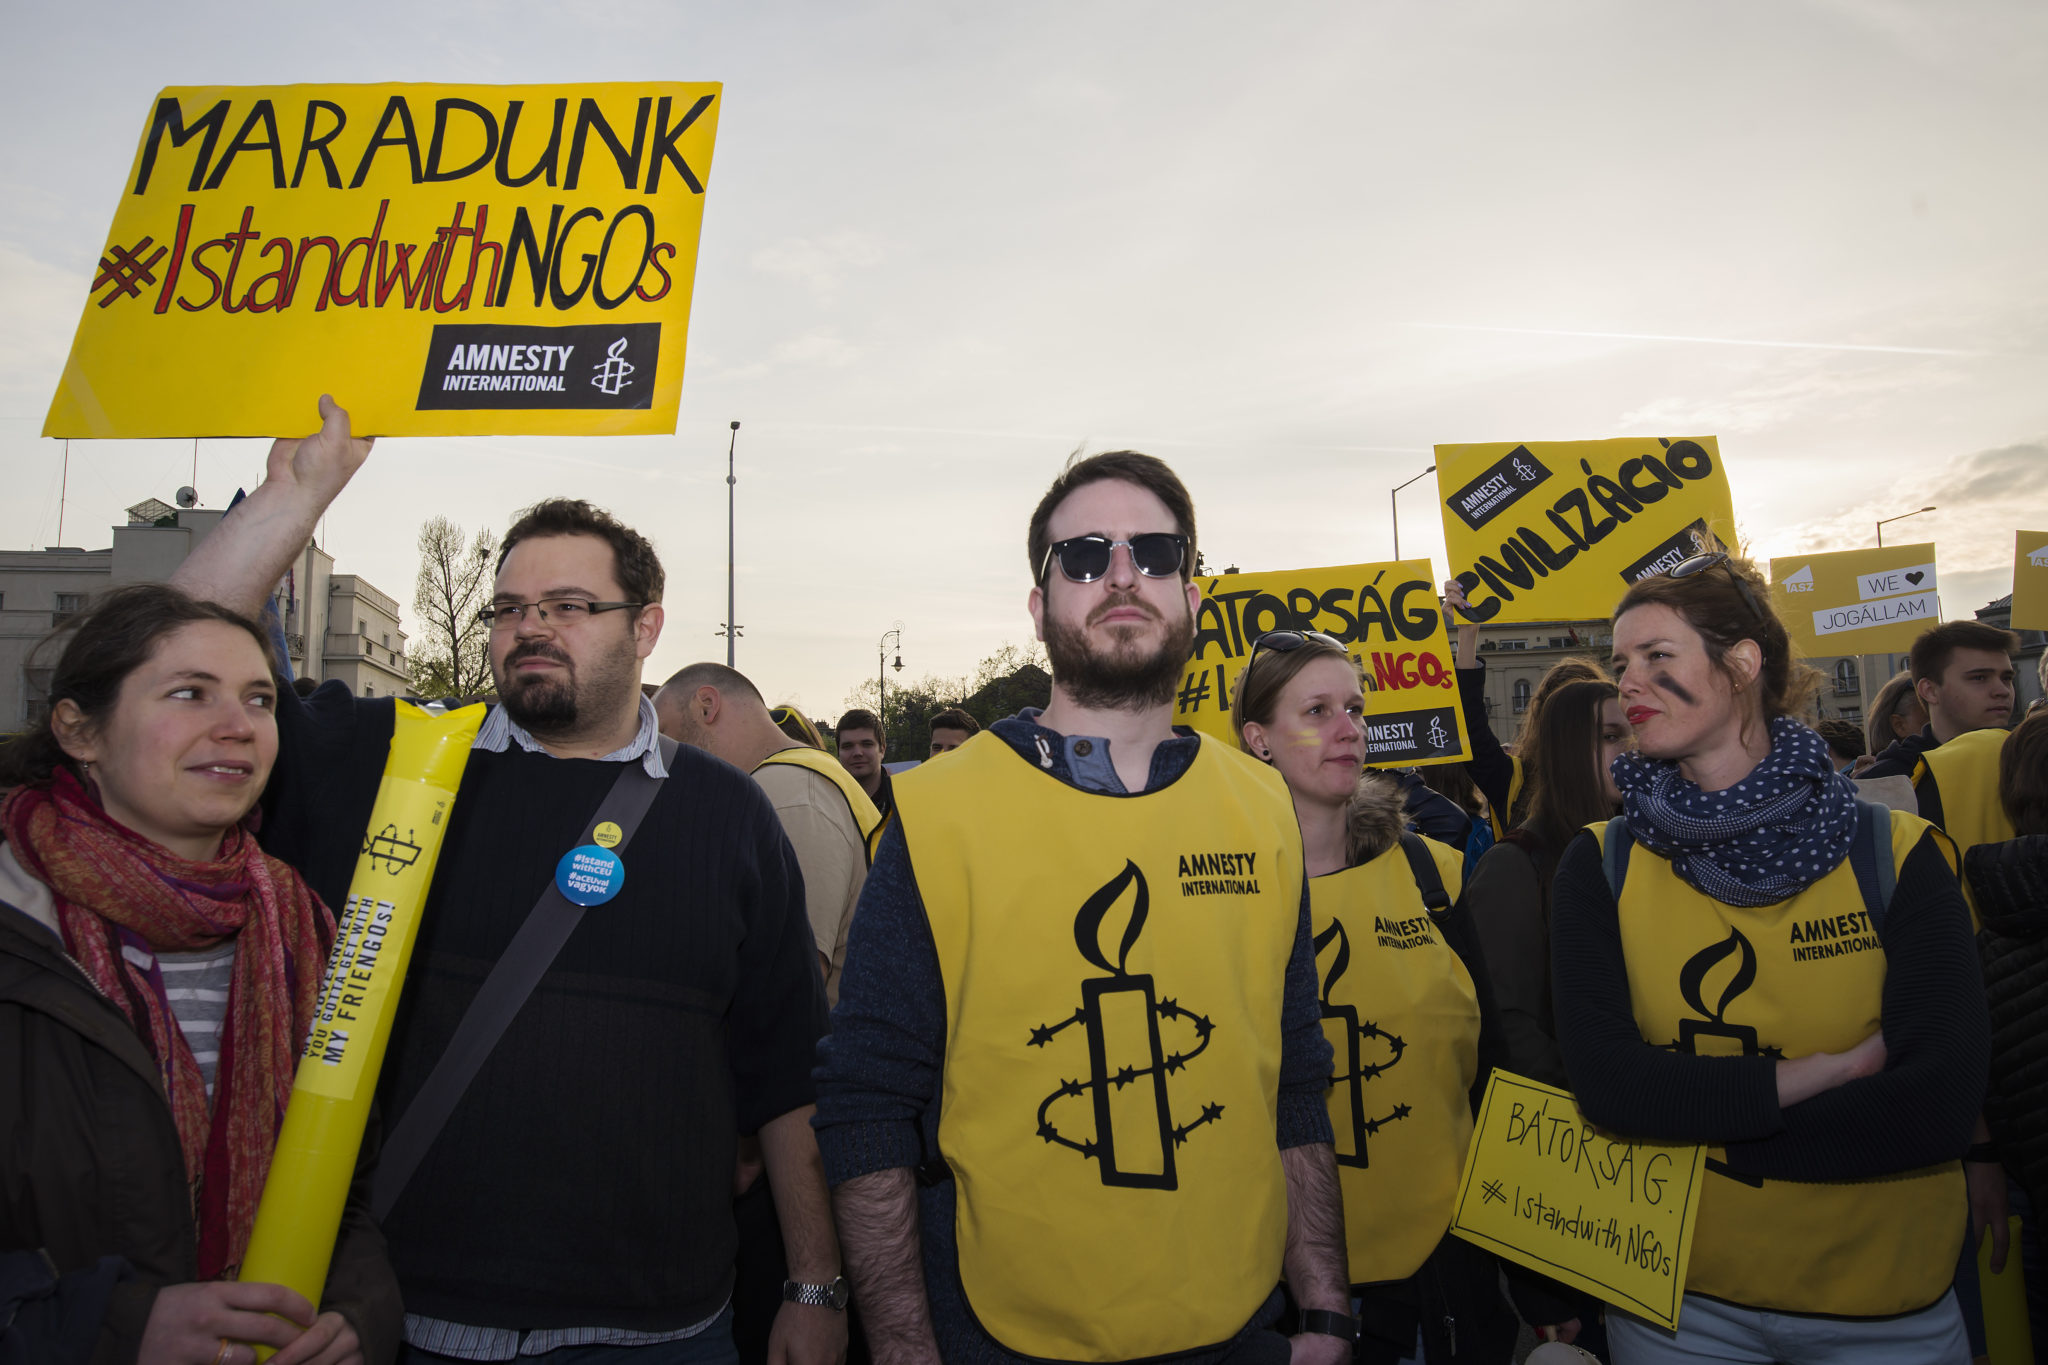 Hungary: Authorities must stop new attempt to choke civil society